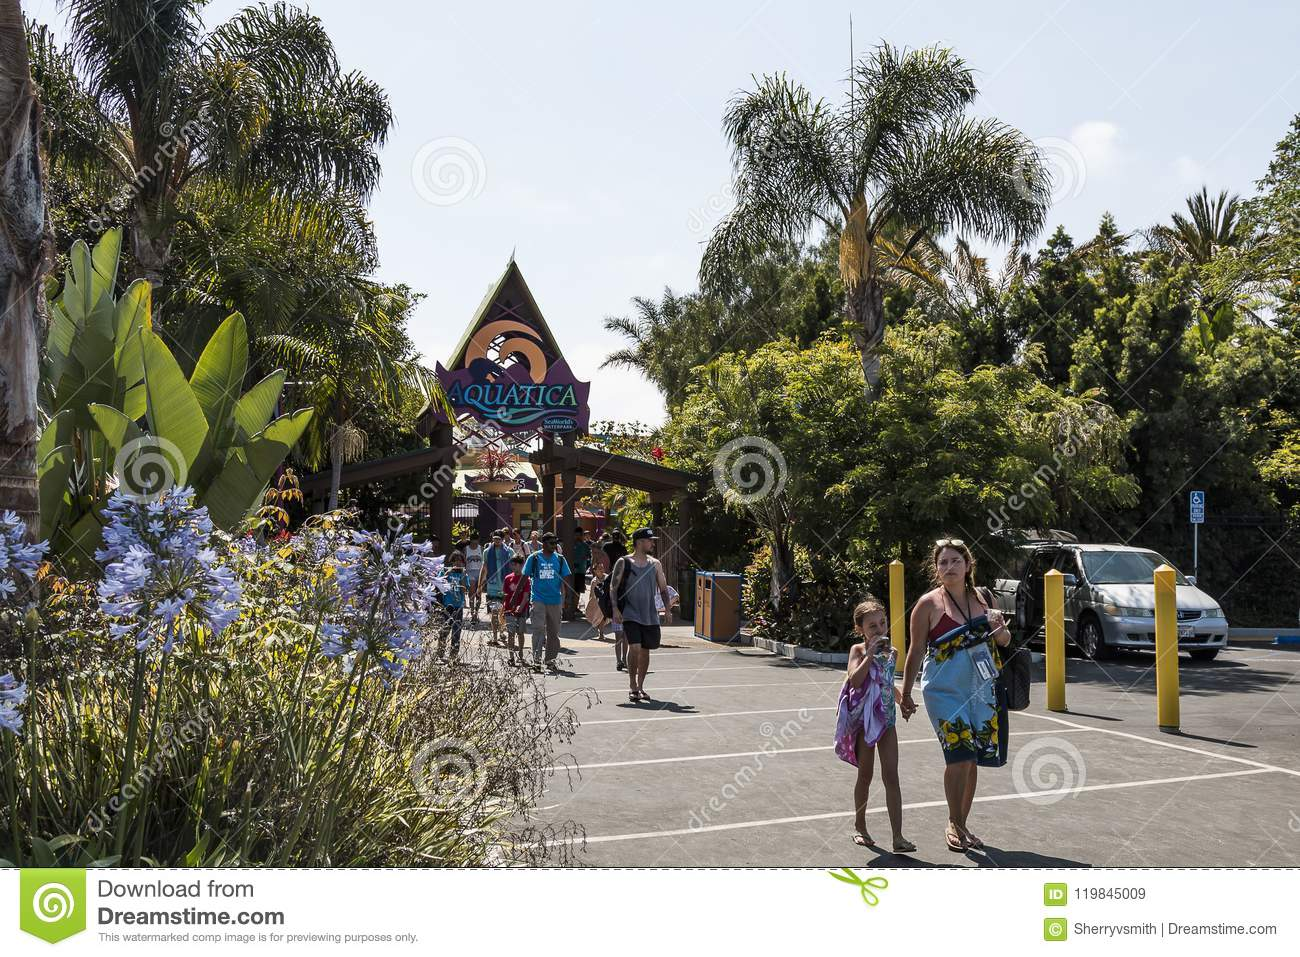 People Exit Aquatic Water Park In San Diego, California